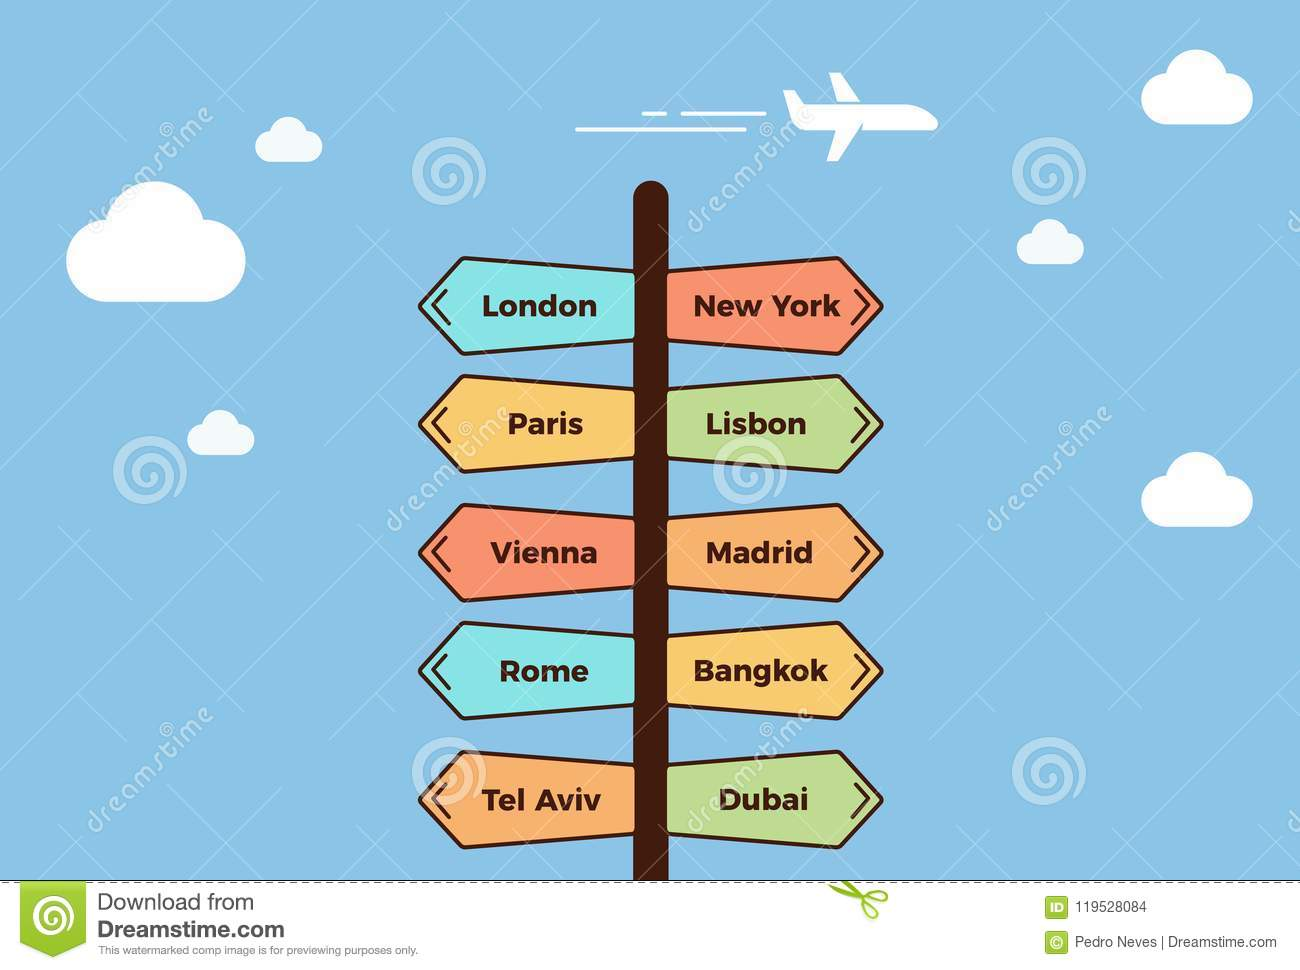 Road post pointing towards different cities. Signpost showing different traveling destinations. Summer holidays concept